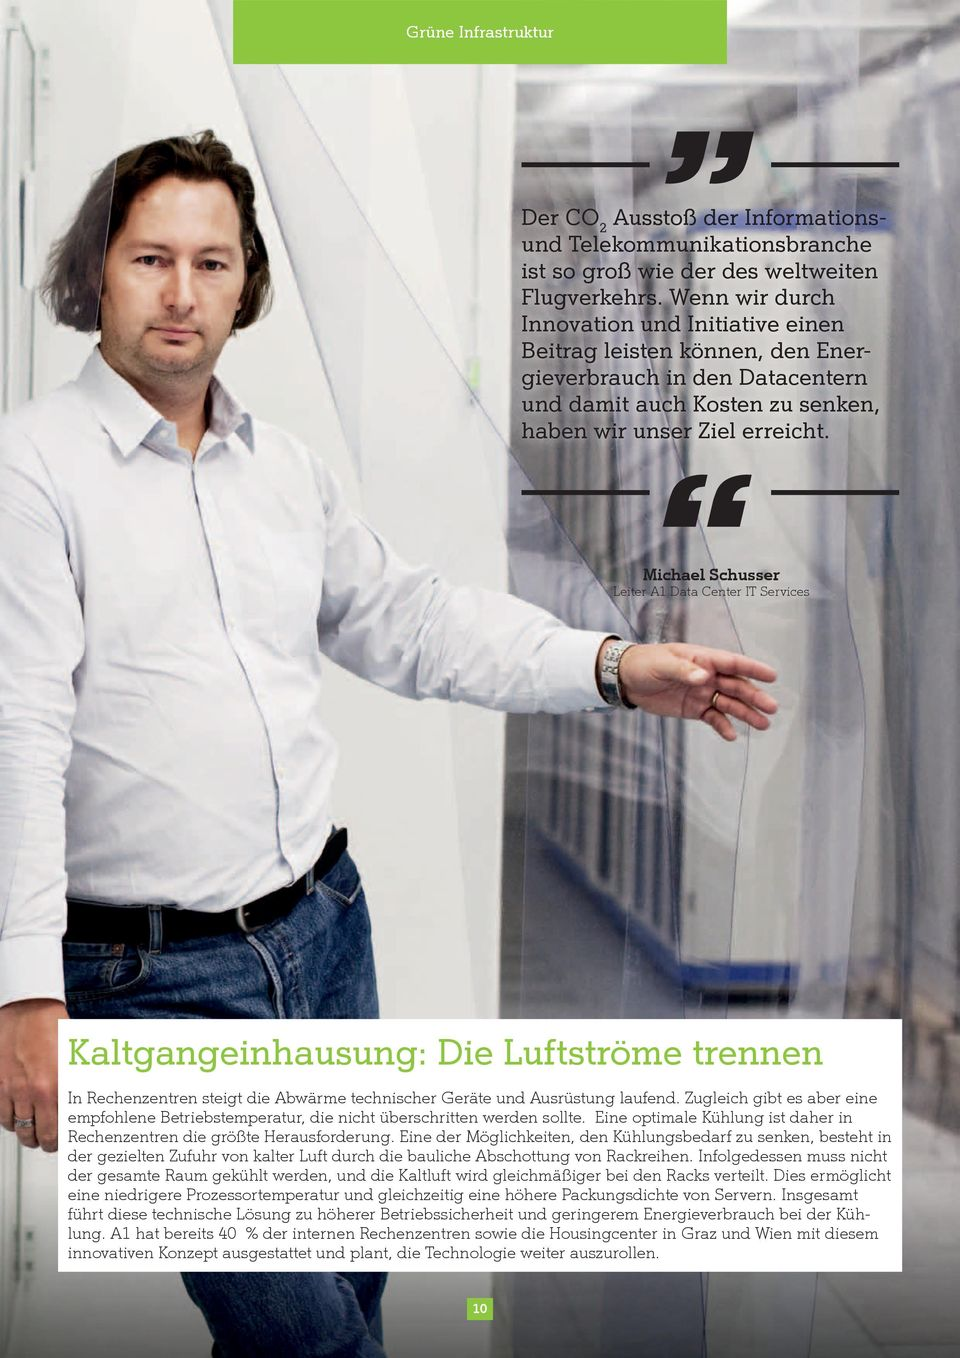 Michael Schusser Leiter A1 Data Center IT Services Kaltgangeinhausung: Die Luftströme trennen In Rechenzentren steigt die Abwärme technischer Geräte und Ausrüstung laufend.